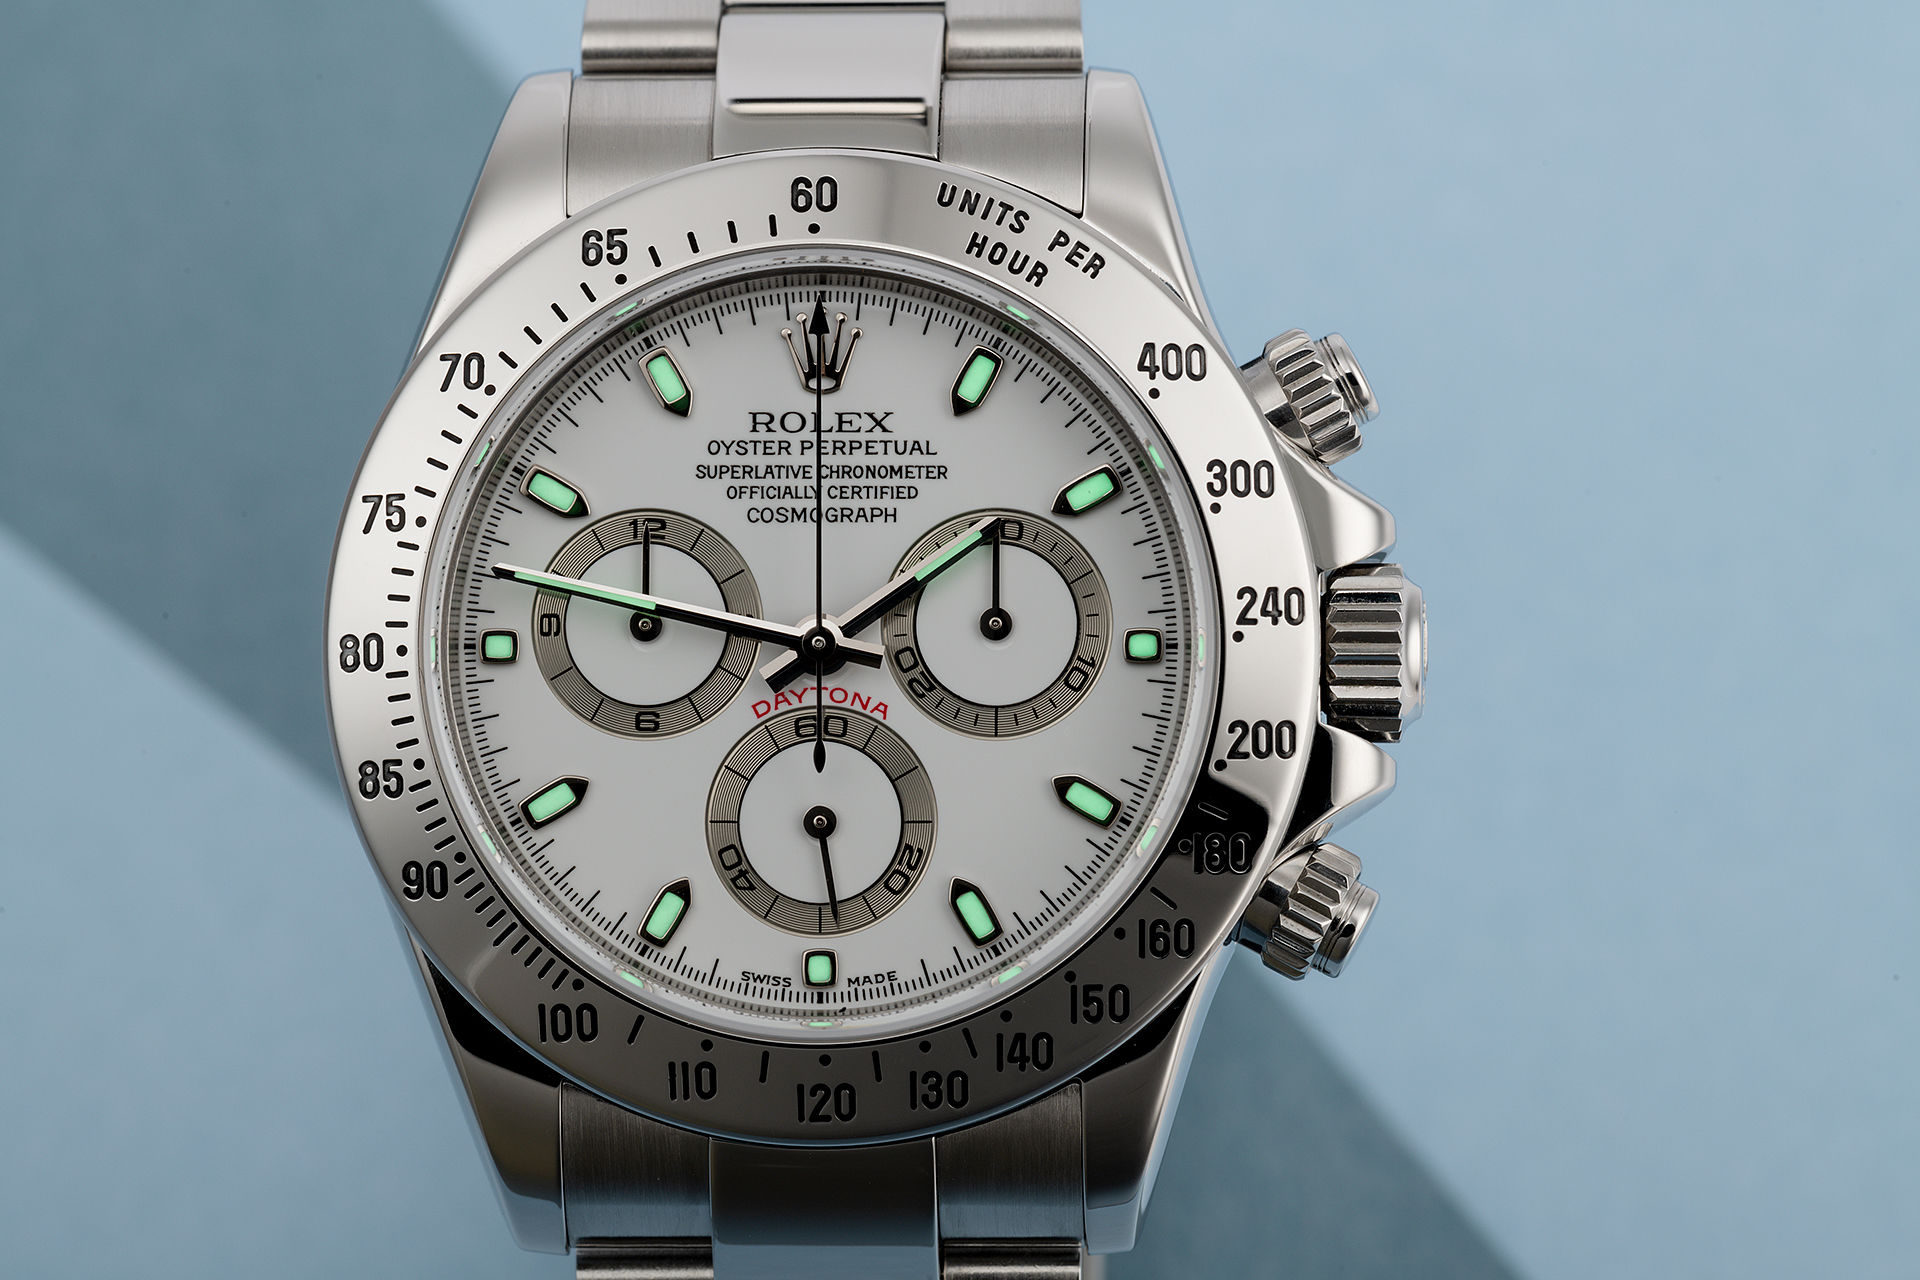 ref 116520 | 'Early First Series' Collectors Set | Rolex Cosmograph Daytona